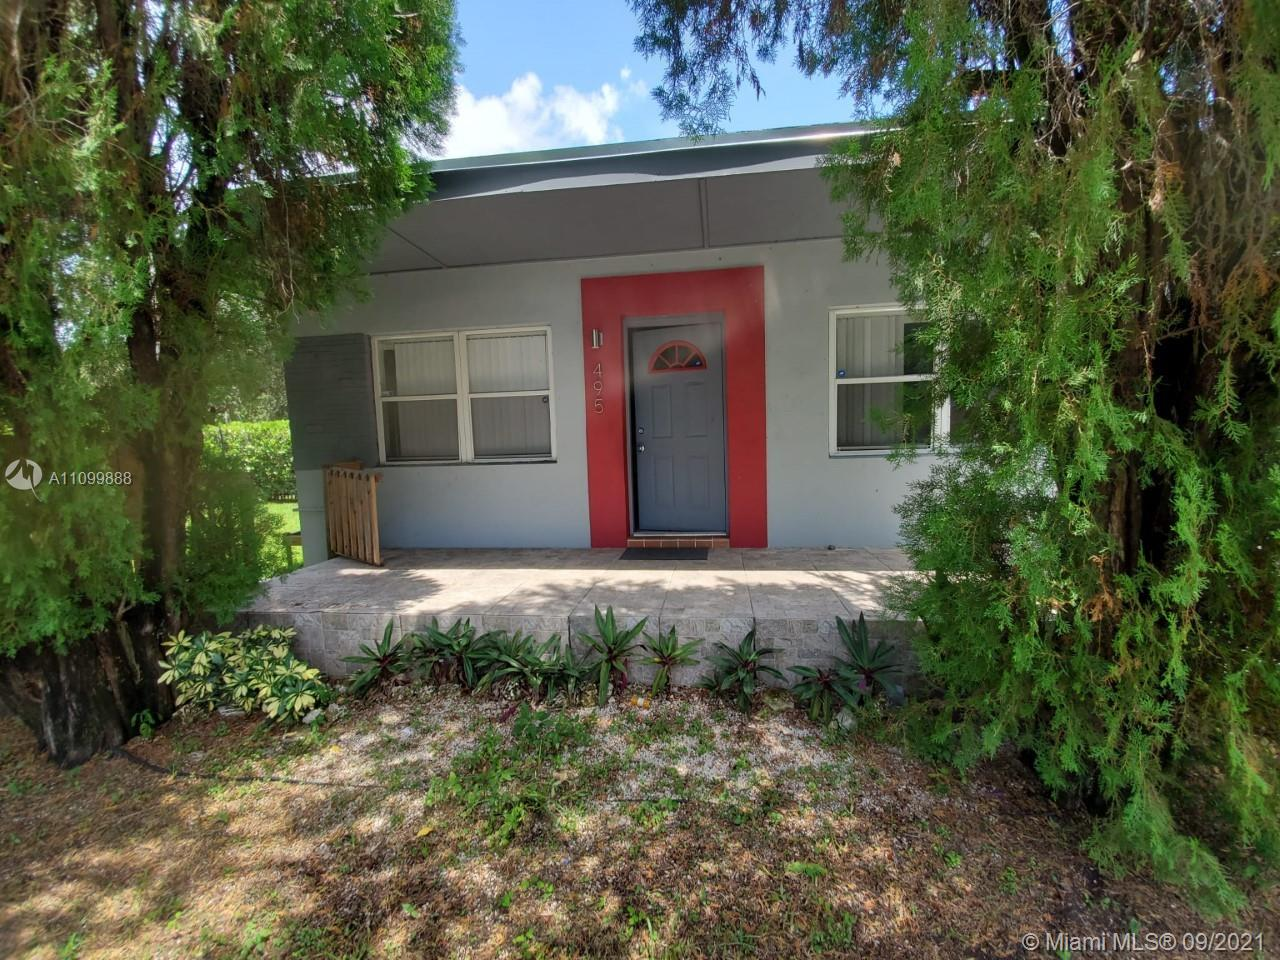 Single Family Home,For Sale,495 NW 42nd St, Miami, Florida 33127,Brickell,realty,broker,condos near me